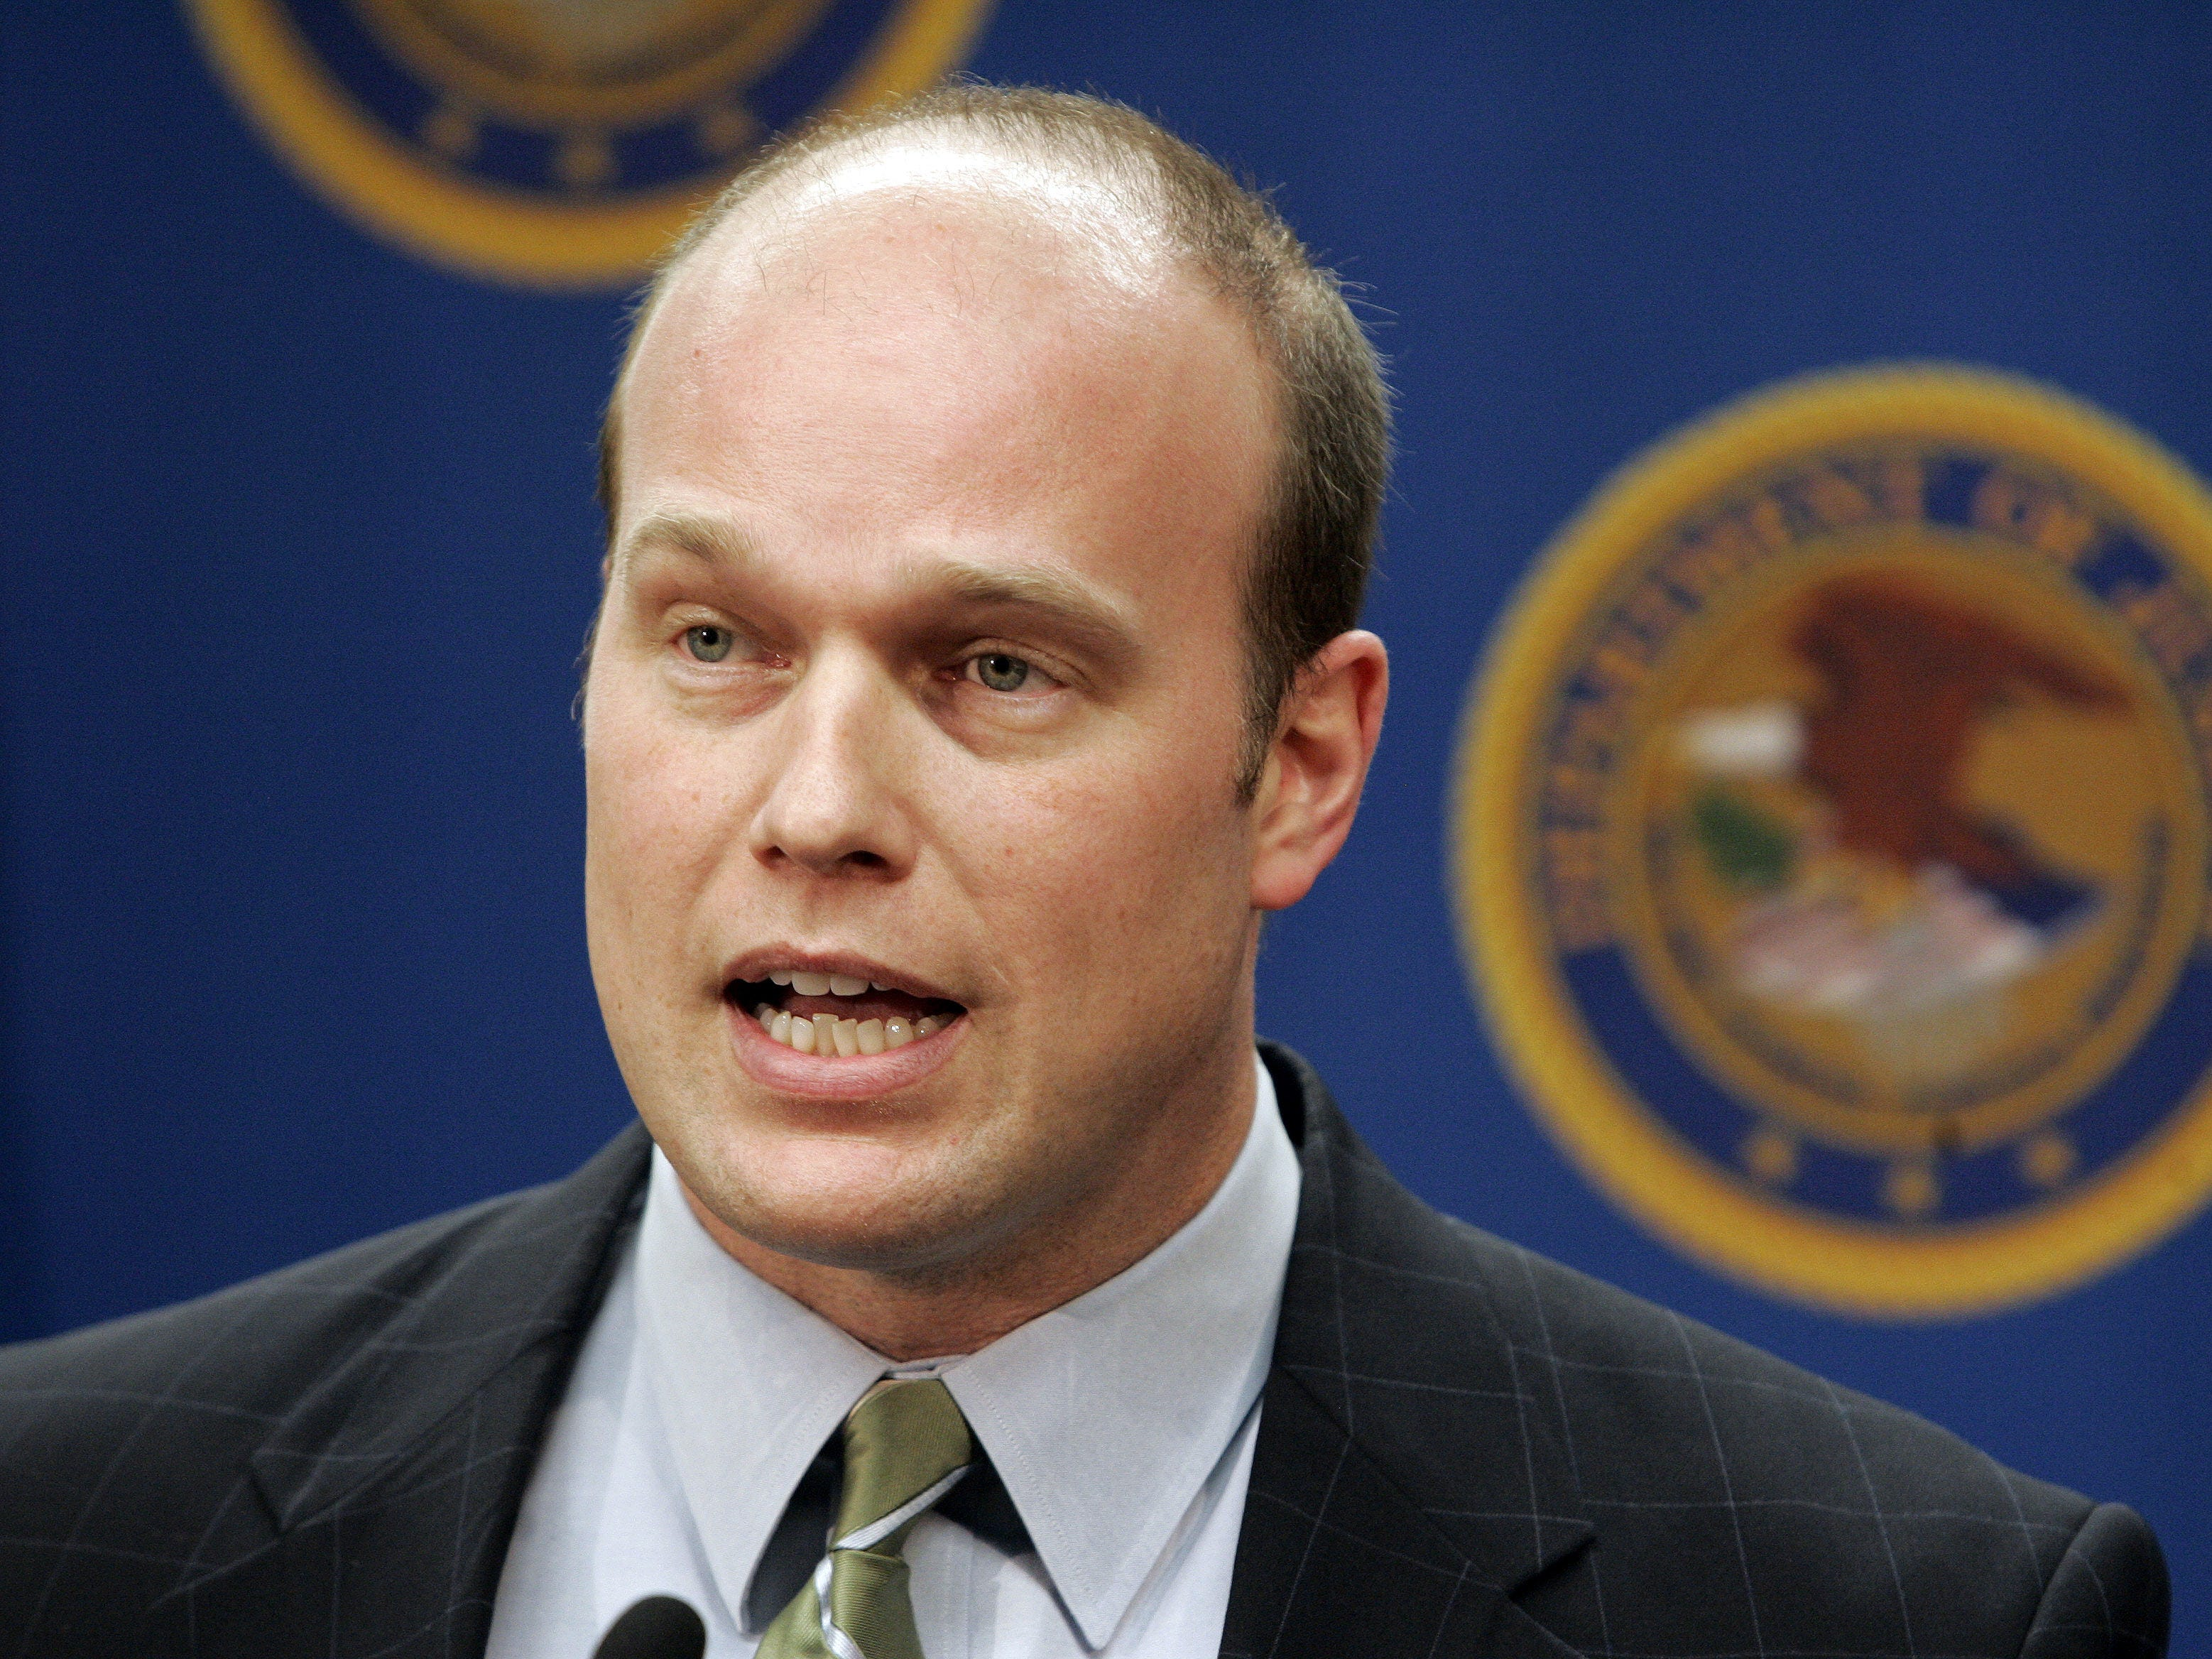 From March 2007: Southern District of Iowa U.S. Attorney Matt Whitaker speaks at a press conference in 2007.